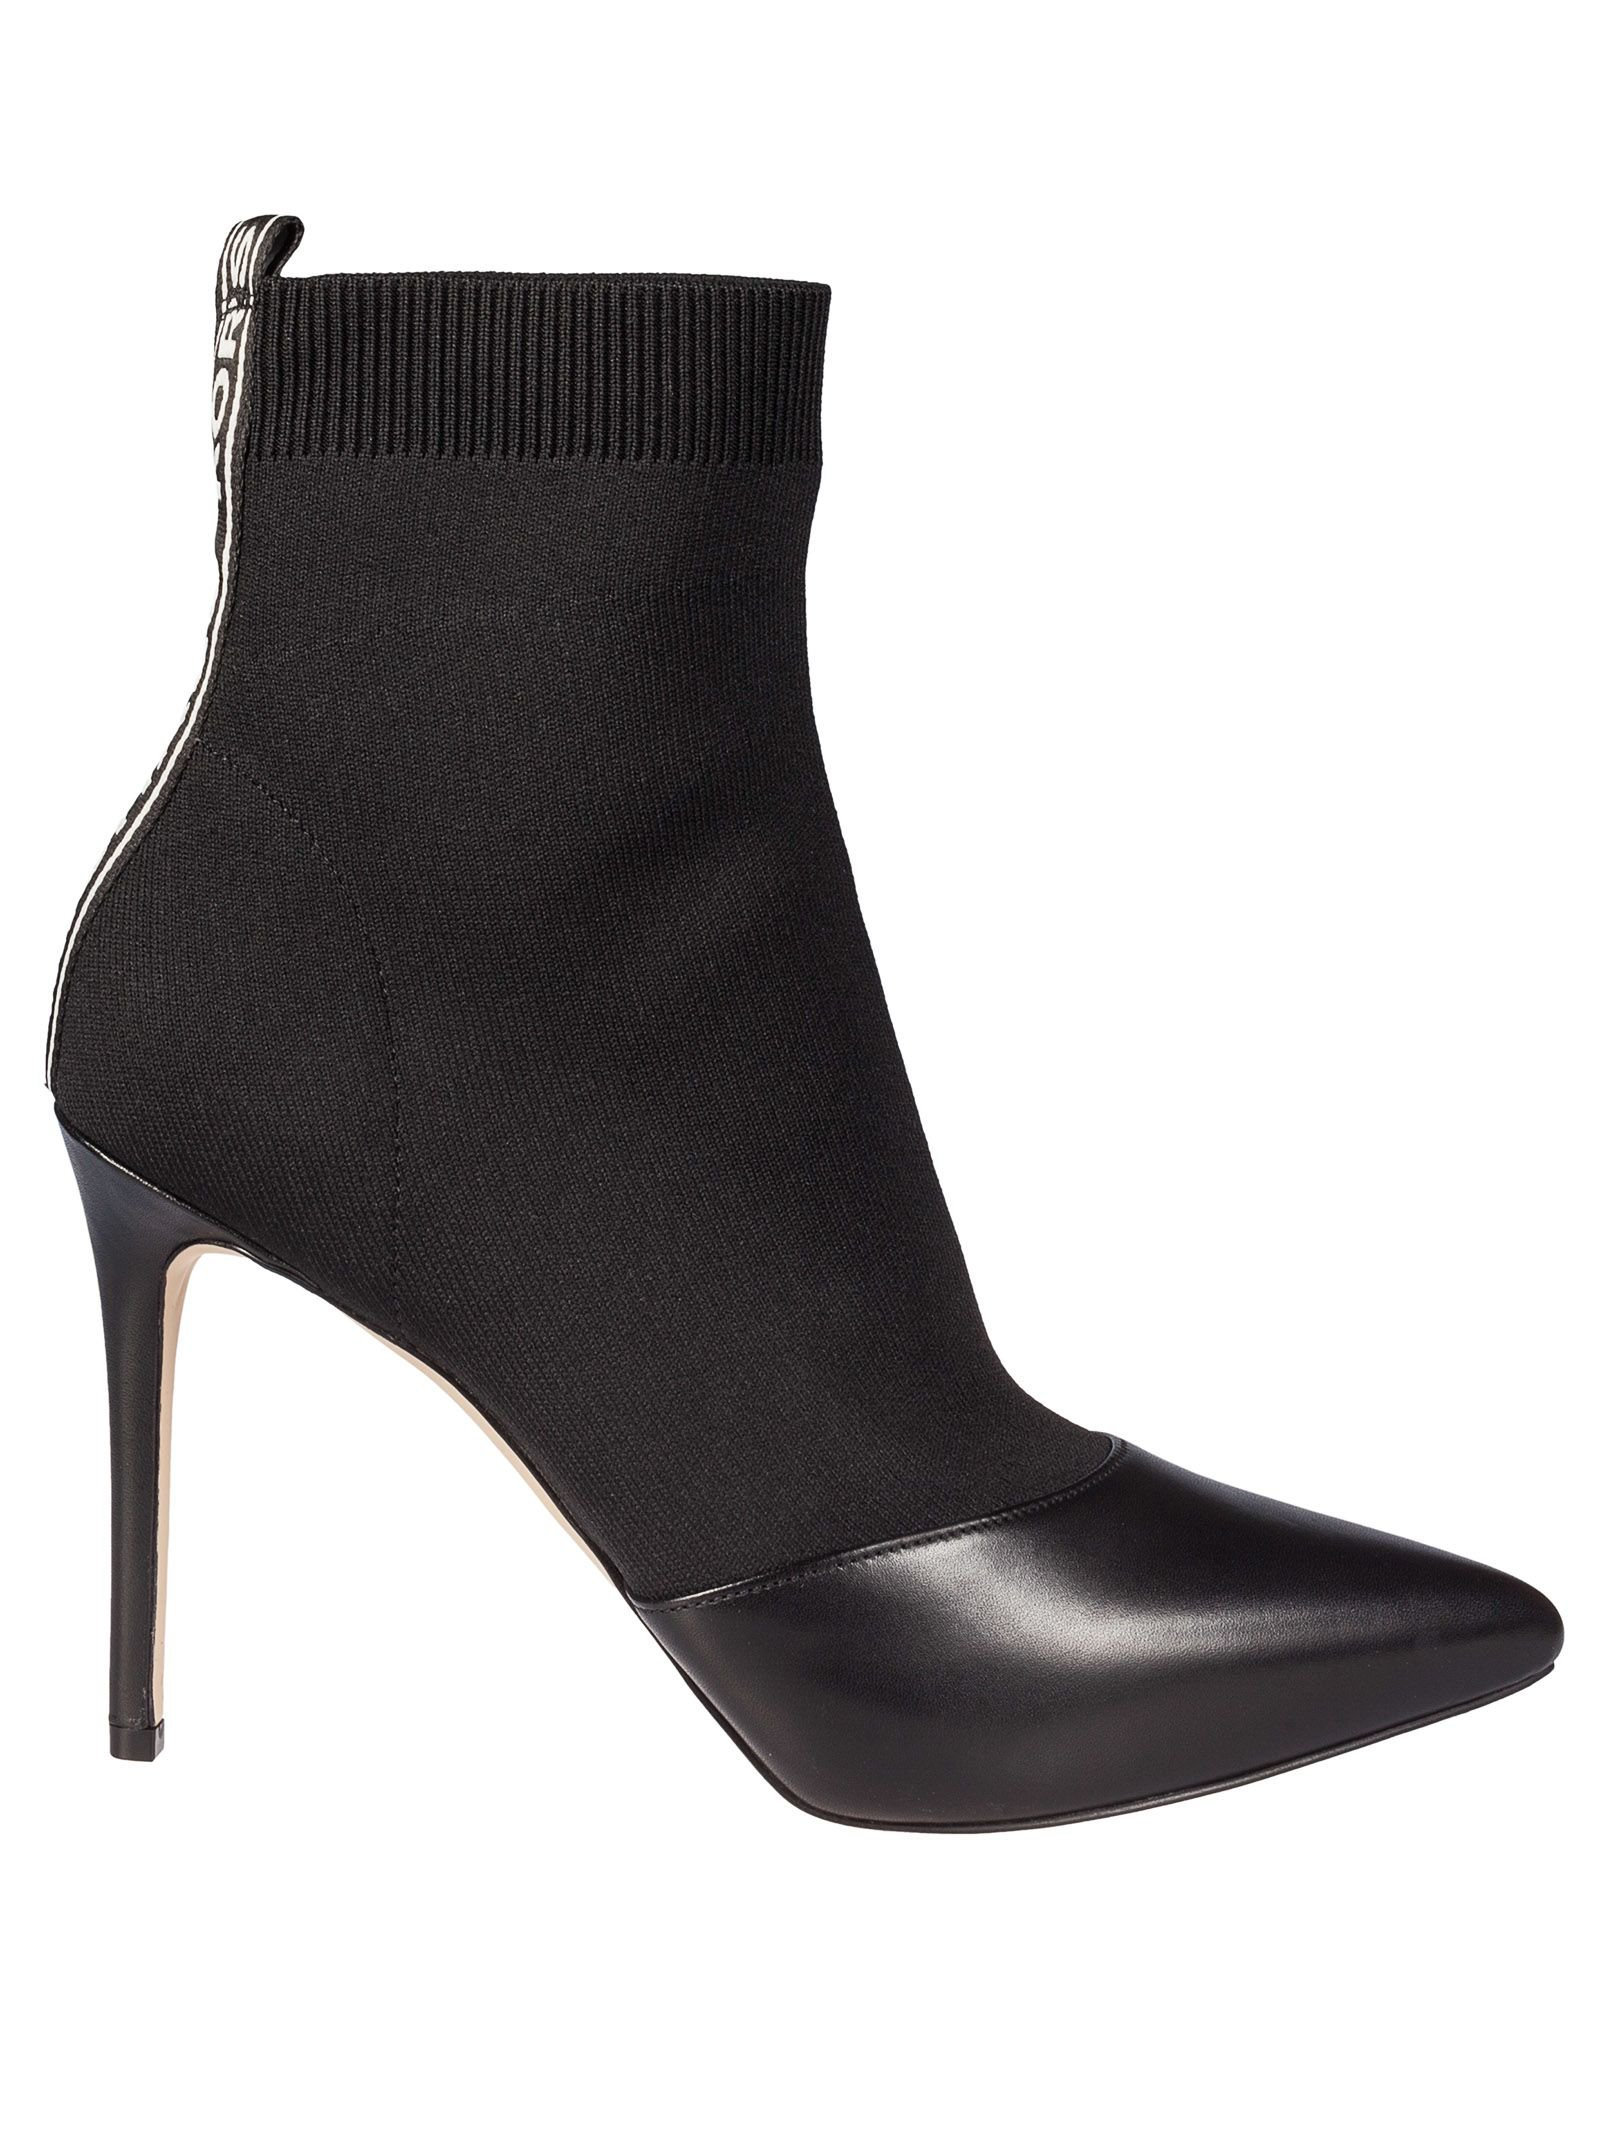 Michael Kors Vicky Ankle Boots